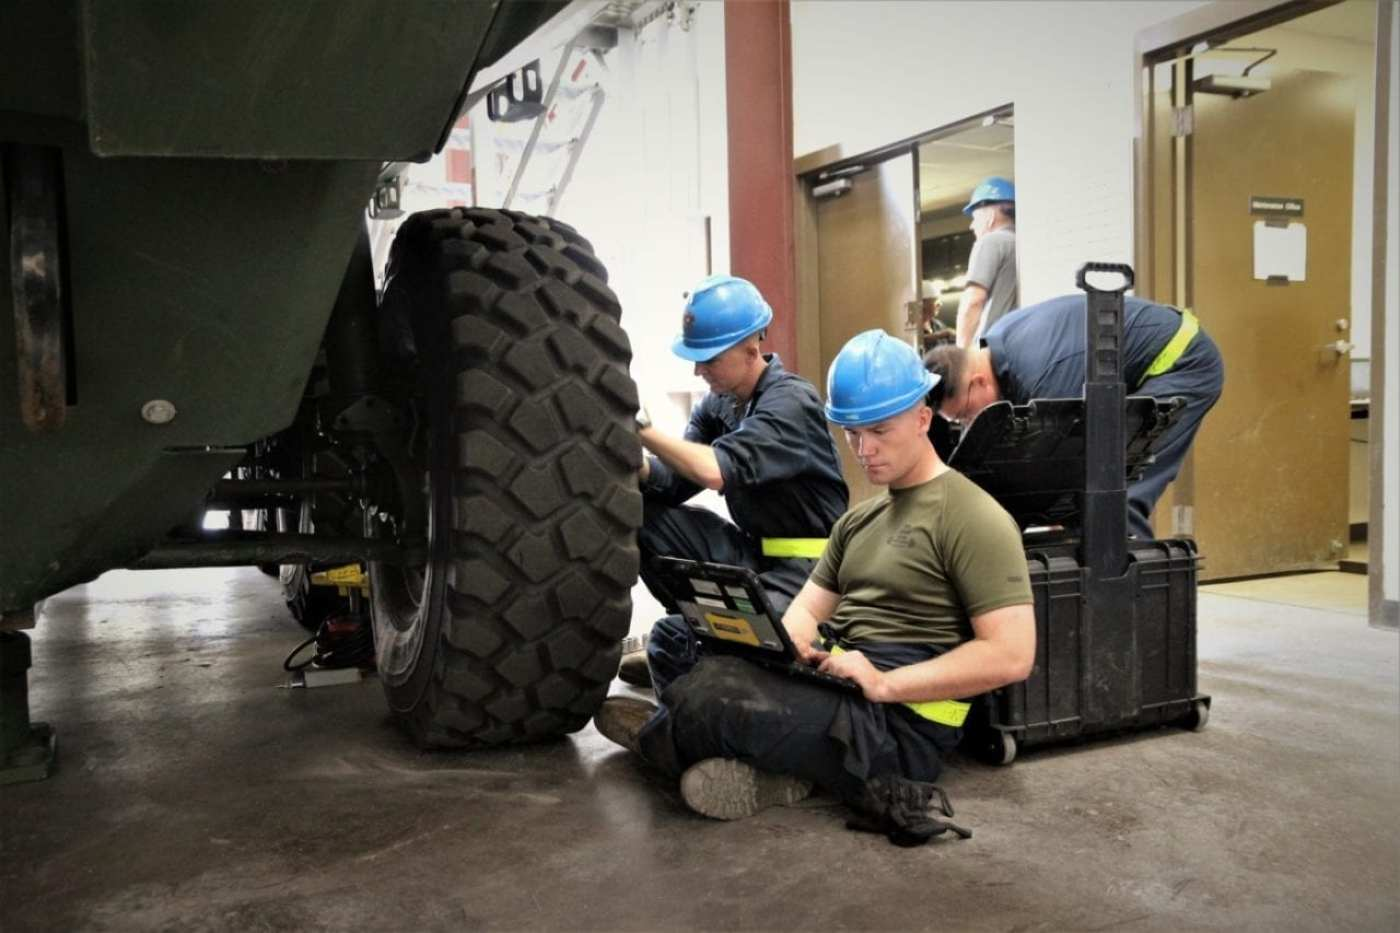 Cpl. Patrick Canterbury reads off instructions from the Interactive Electronic Technical Manual while Cpl. Austin Boyd performs a maintenance task on the Amphibious Combat Vehicle during the Logistics Demonstration aboard Camp Pendleton, California, on Sept. 11, 2019. Log Demo is designed to evaluate and correct, if needed, the maintenance and operational manuals for the ACV that will be eventually used by fleet Marines. (U.S. Marine Corps photo by Ashley Calingo)